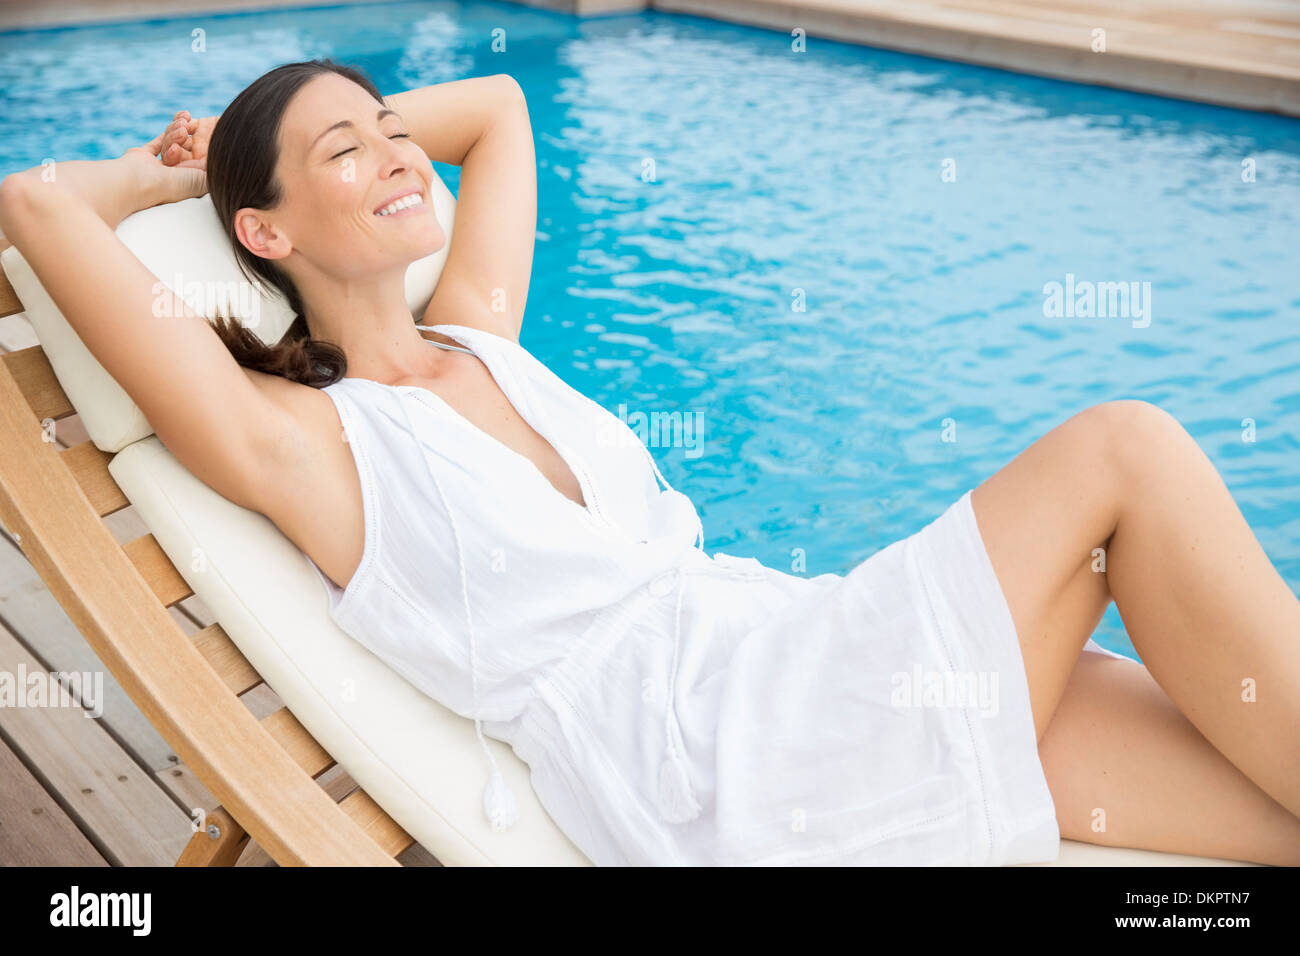 Woman relaxing by pool - Stock Image